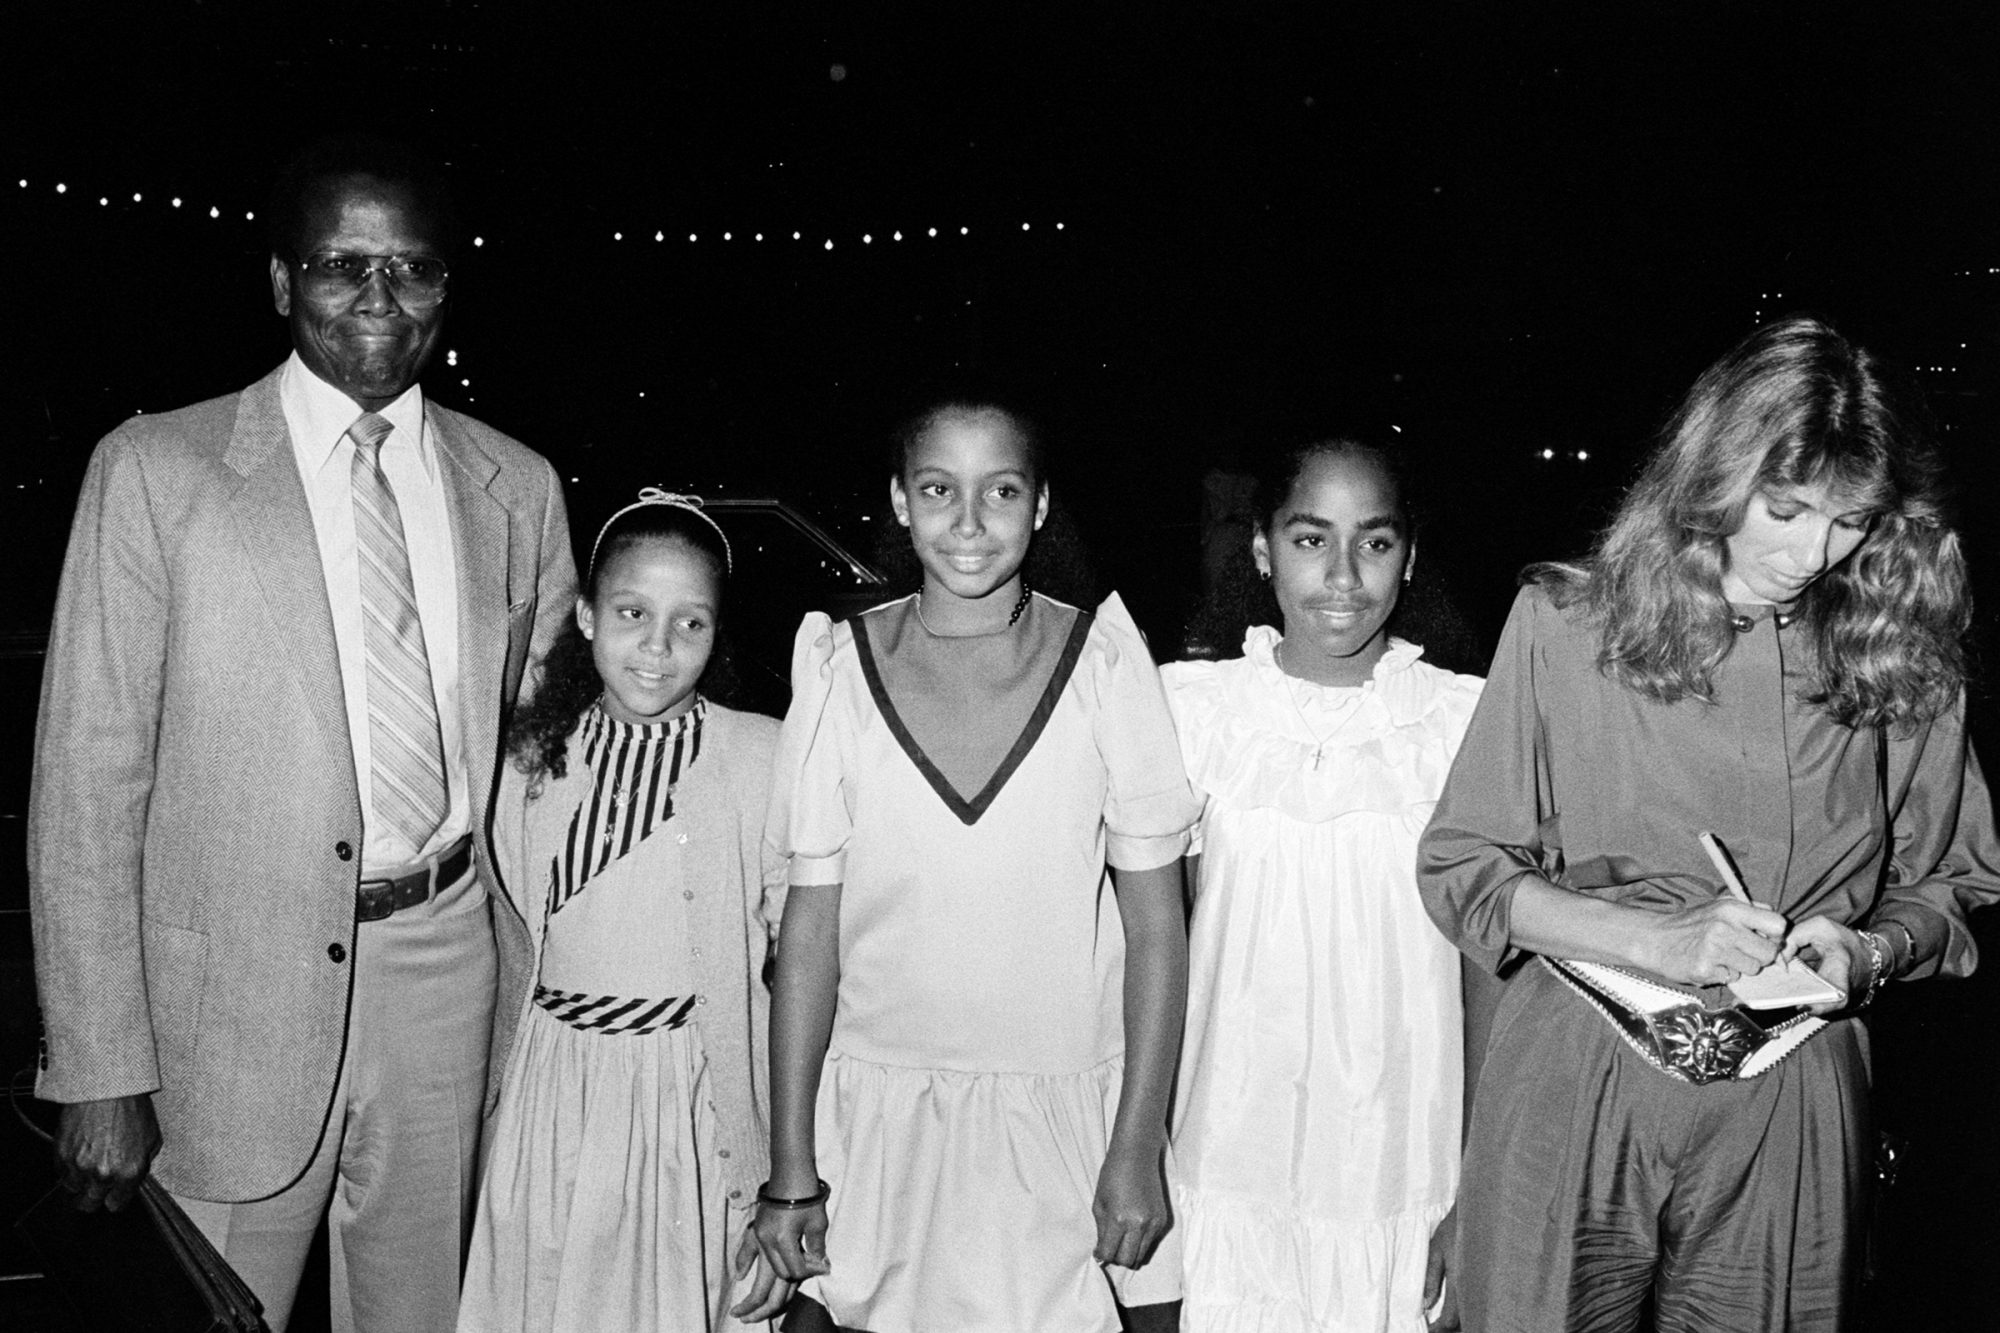 Sidney Poitier and His Three Daughters, Sydney Tamiia, Anika, and (either Gina, Pamela or Beverly)